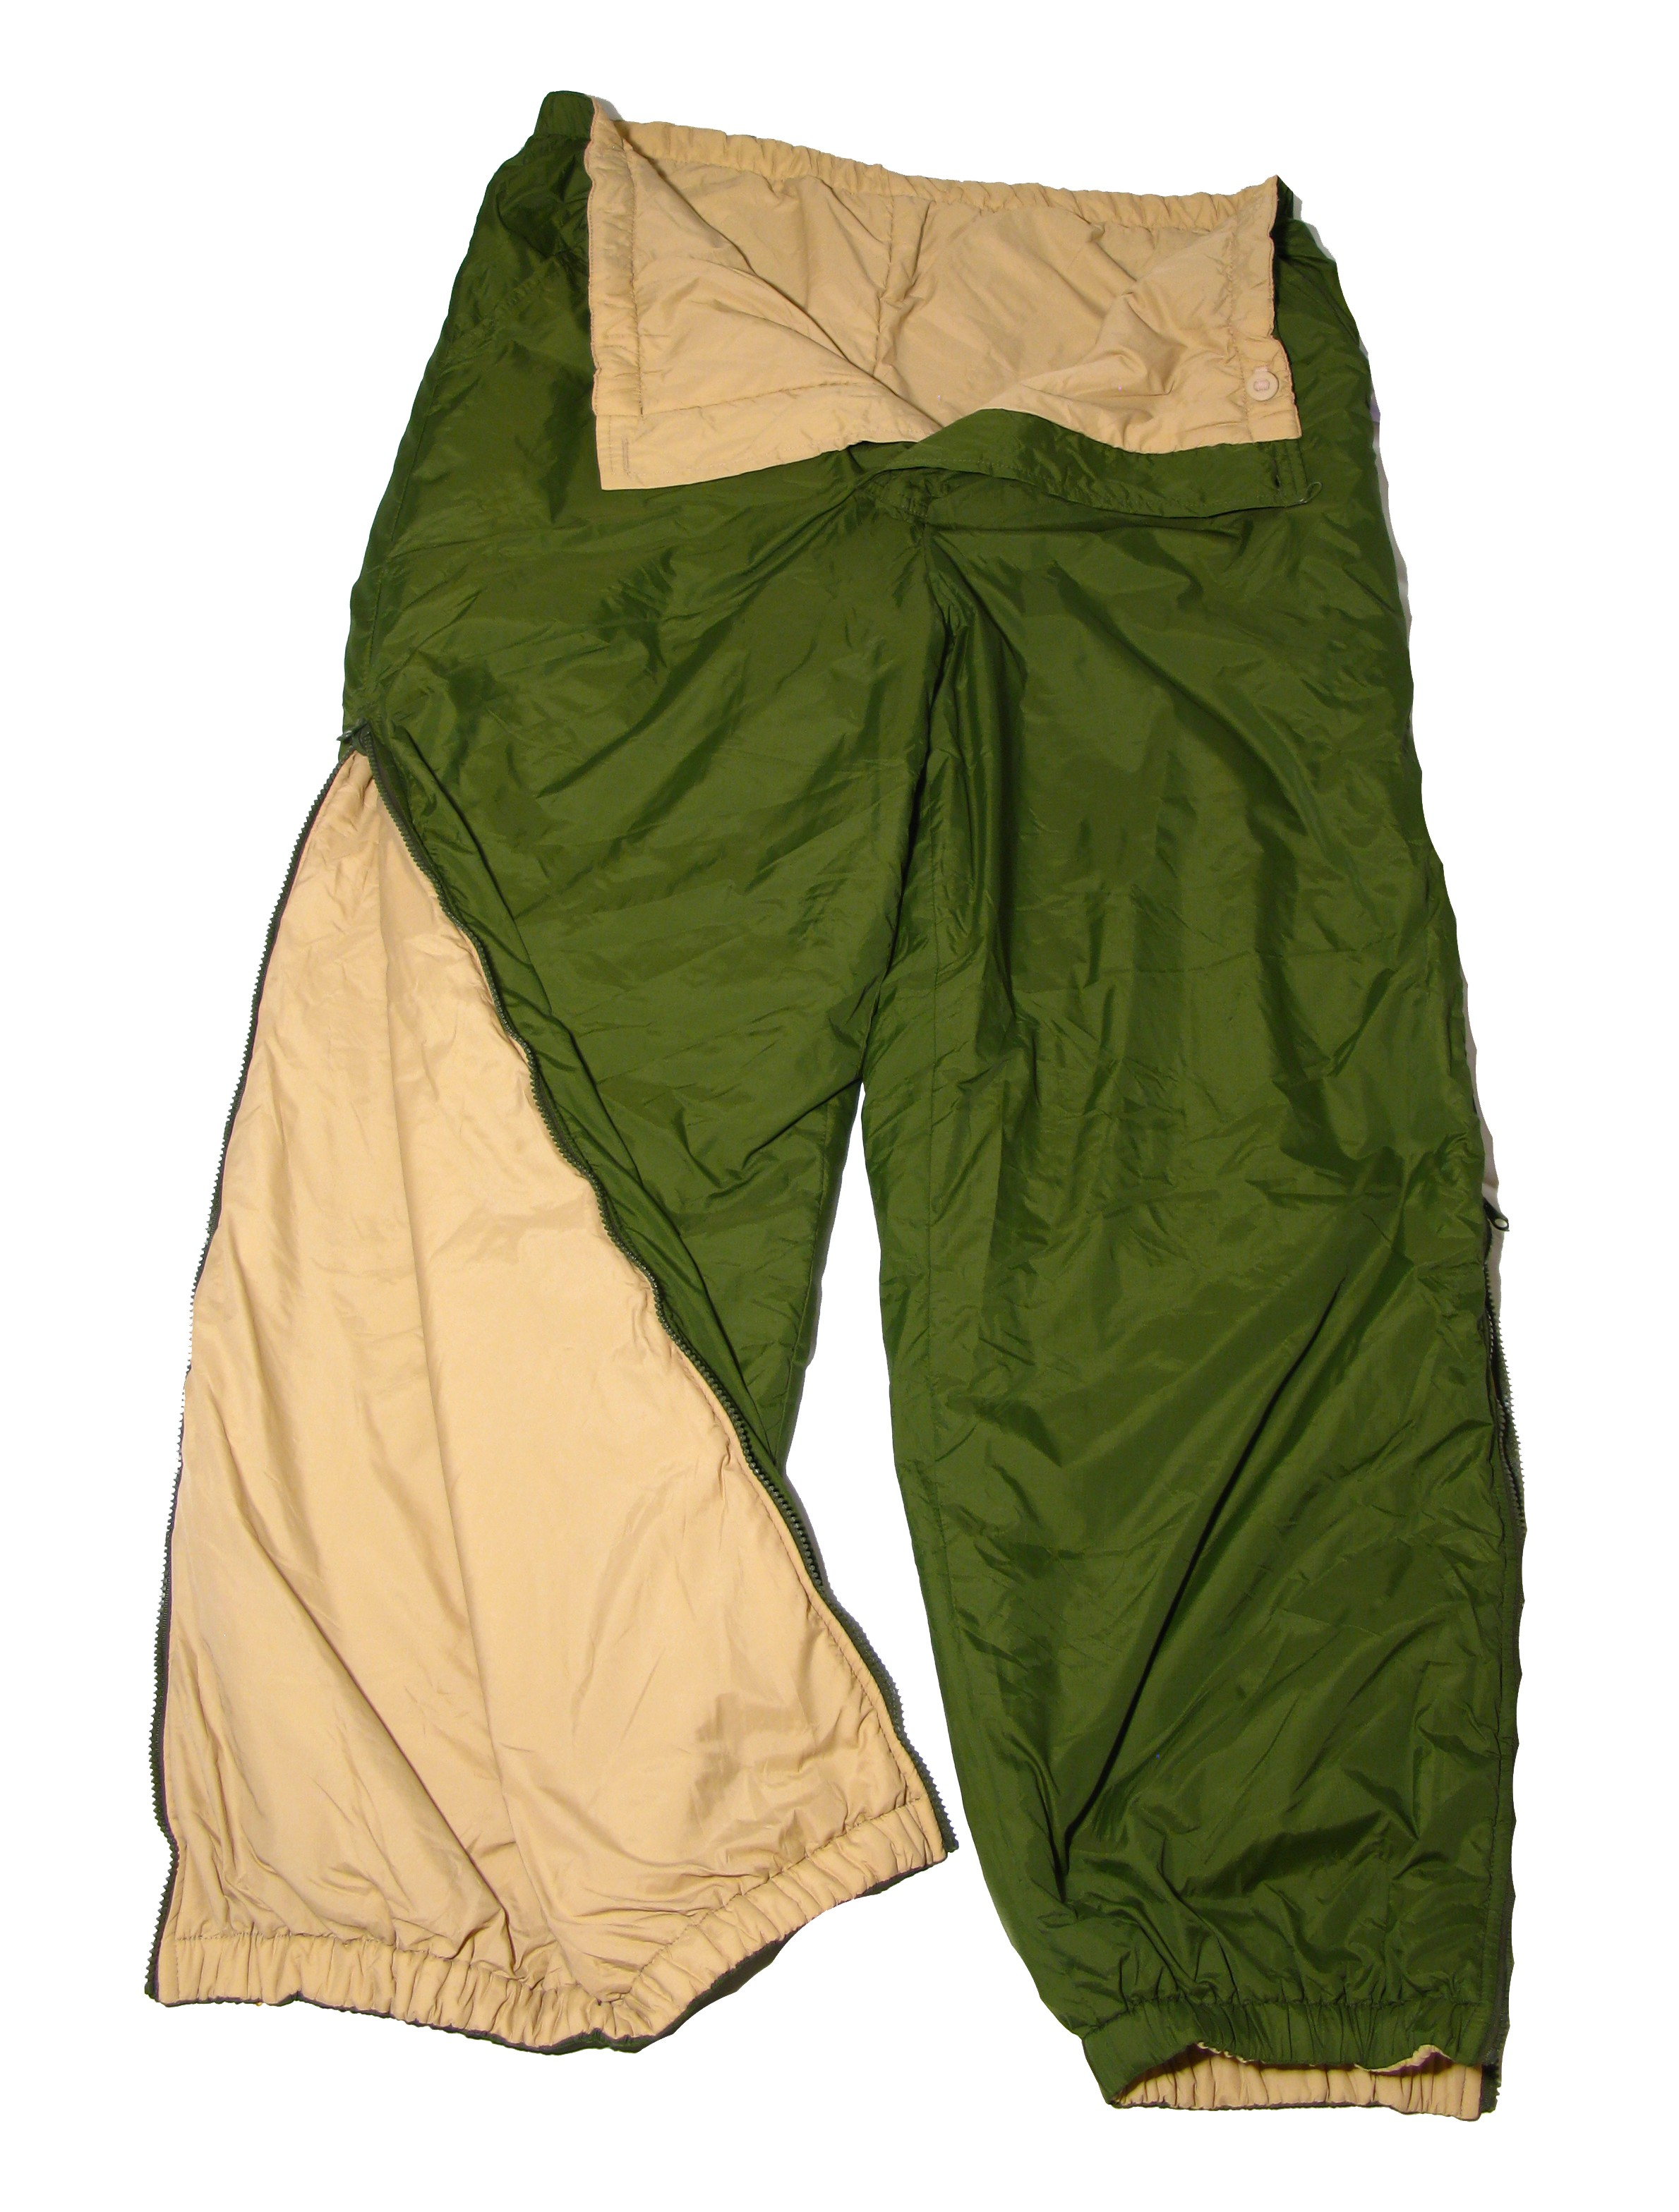 British Army Thermal & Reversible Trousers AKA Softie Trousers